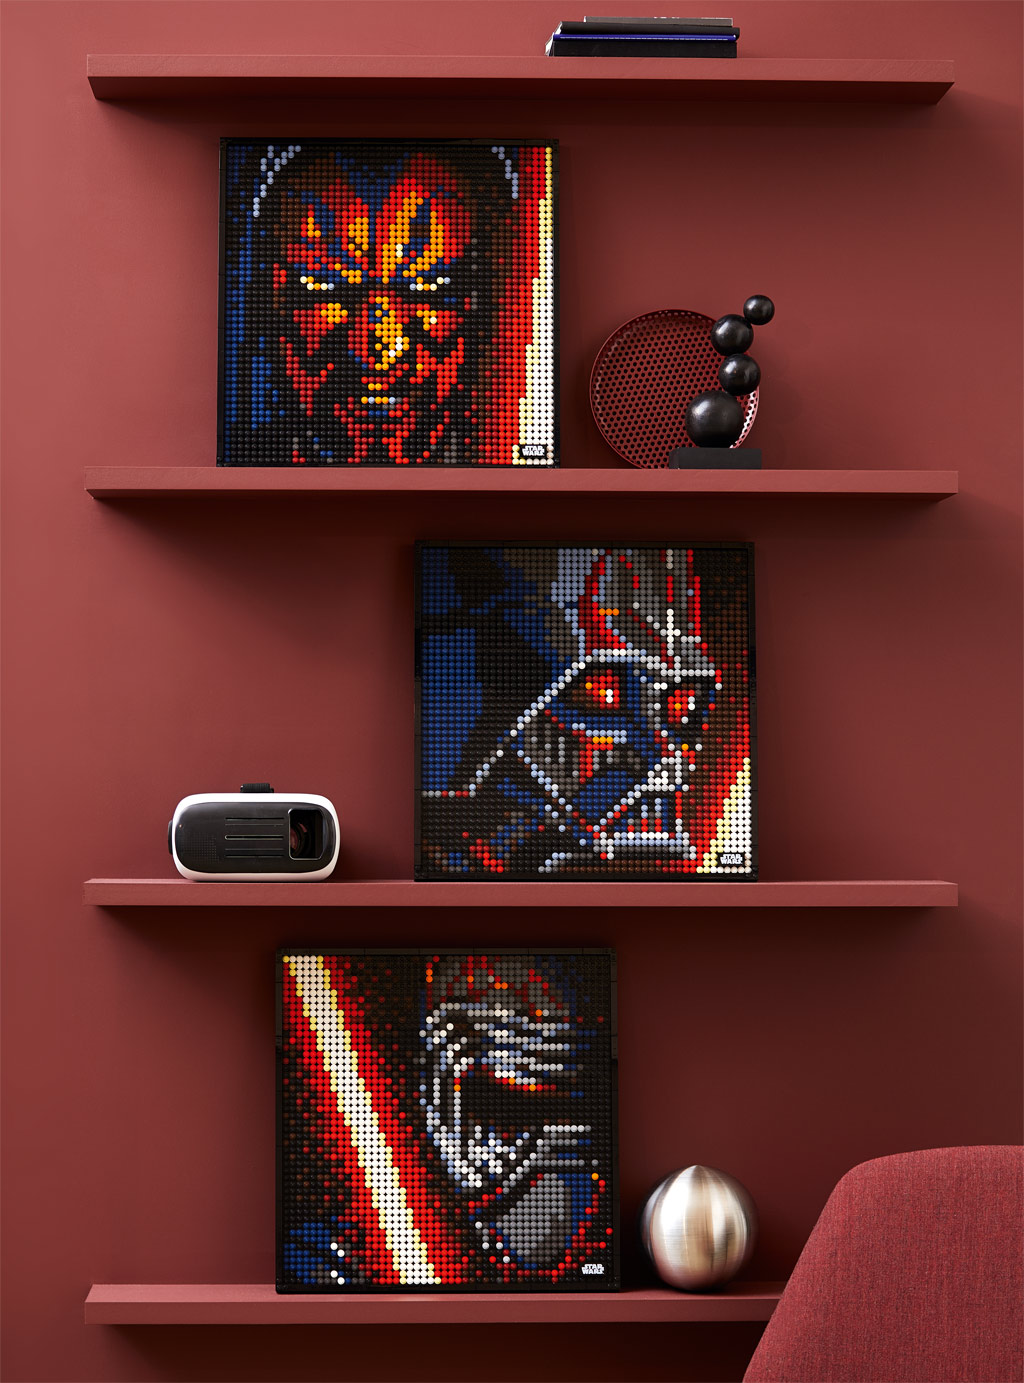 lego-arts-31200-star-wars-the-sith-3-2020 zusammengebaut.com